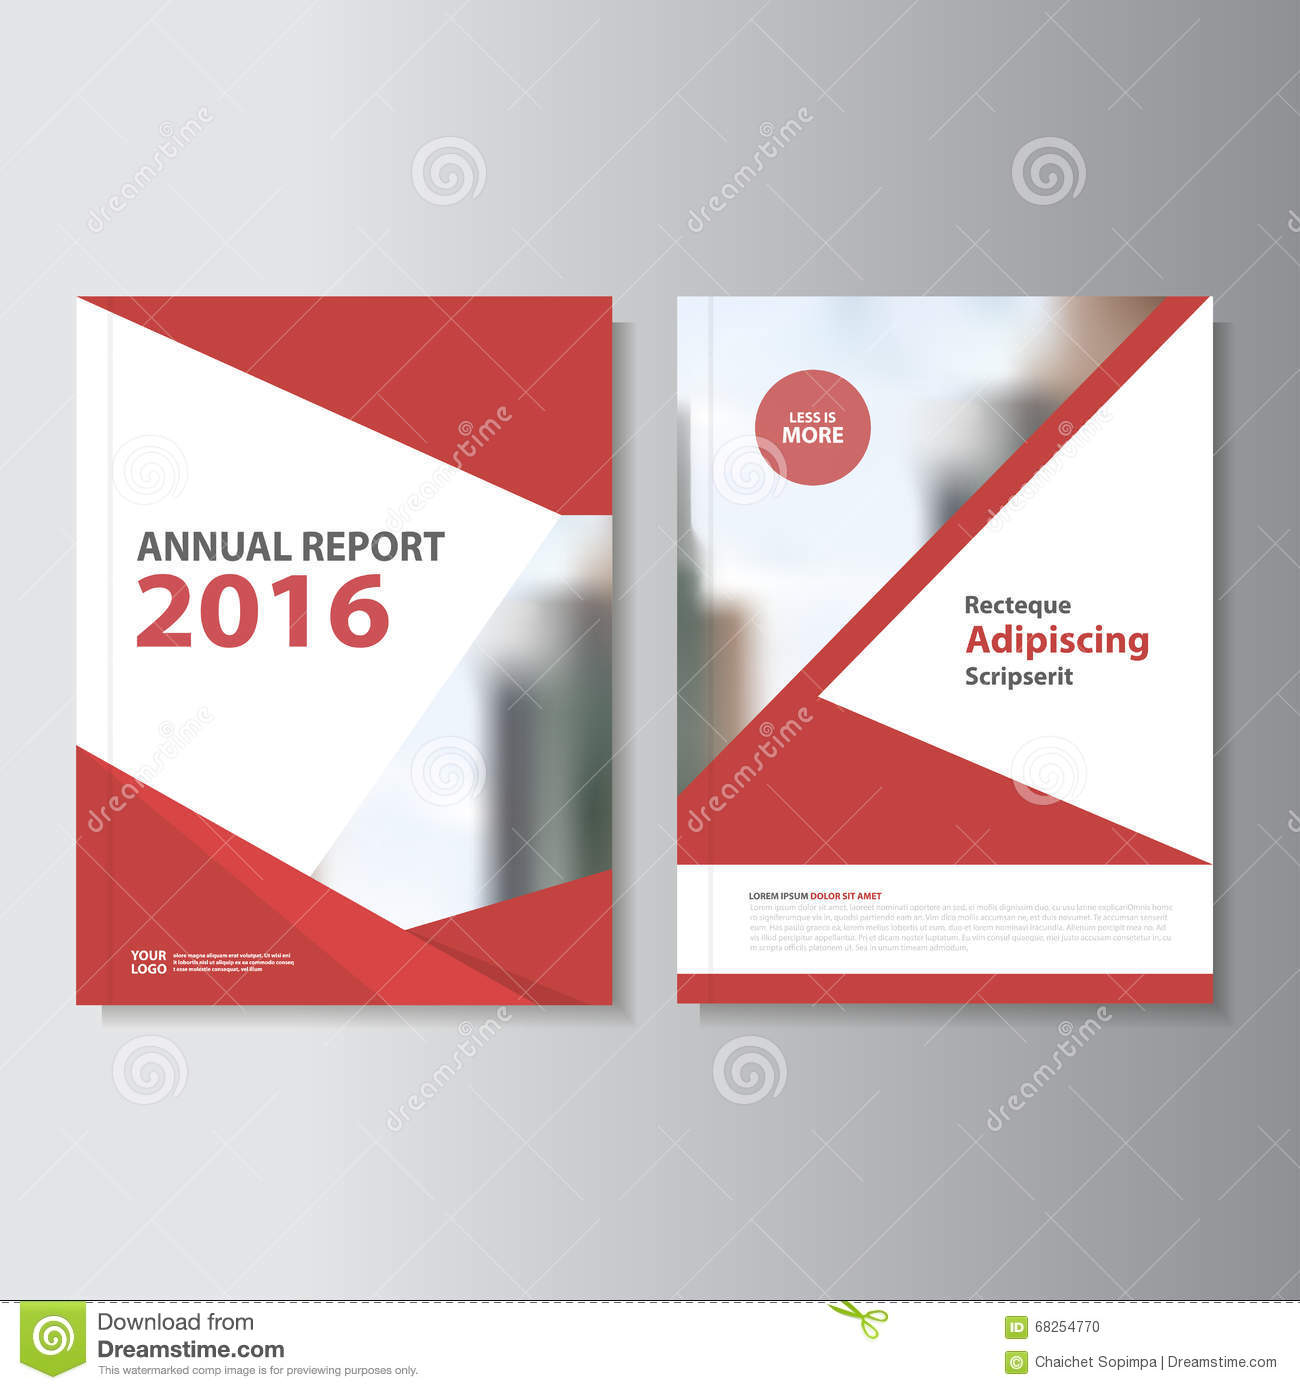 Best Book Cover Design Company : Red vector annual report leaflet brochure flyer template